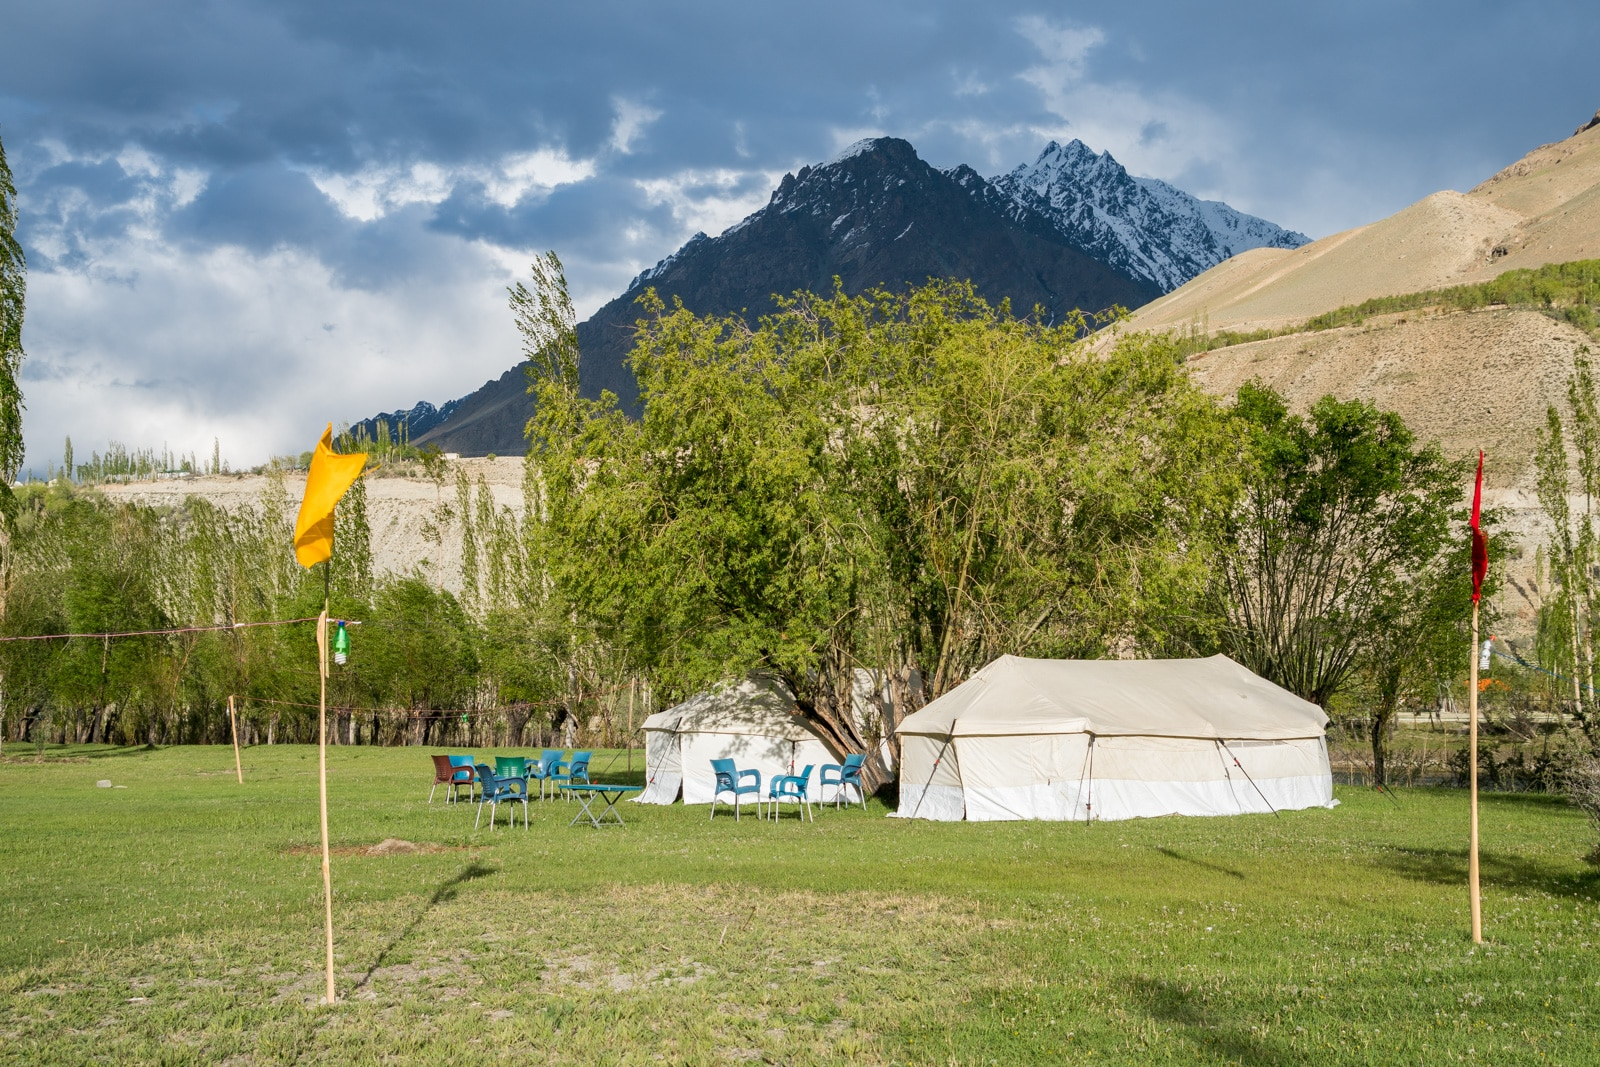 Phander Valley travel guide - Tent camp in Phander - Lost With Purpose travel blog